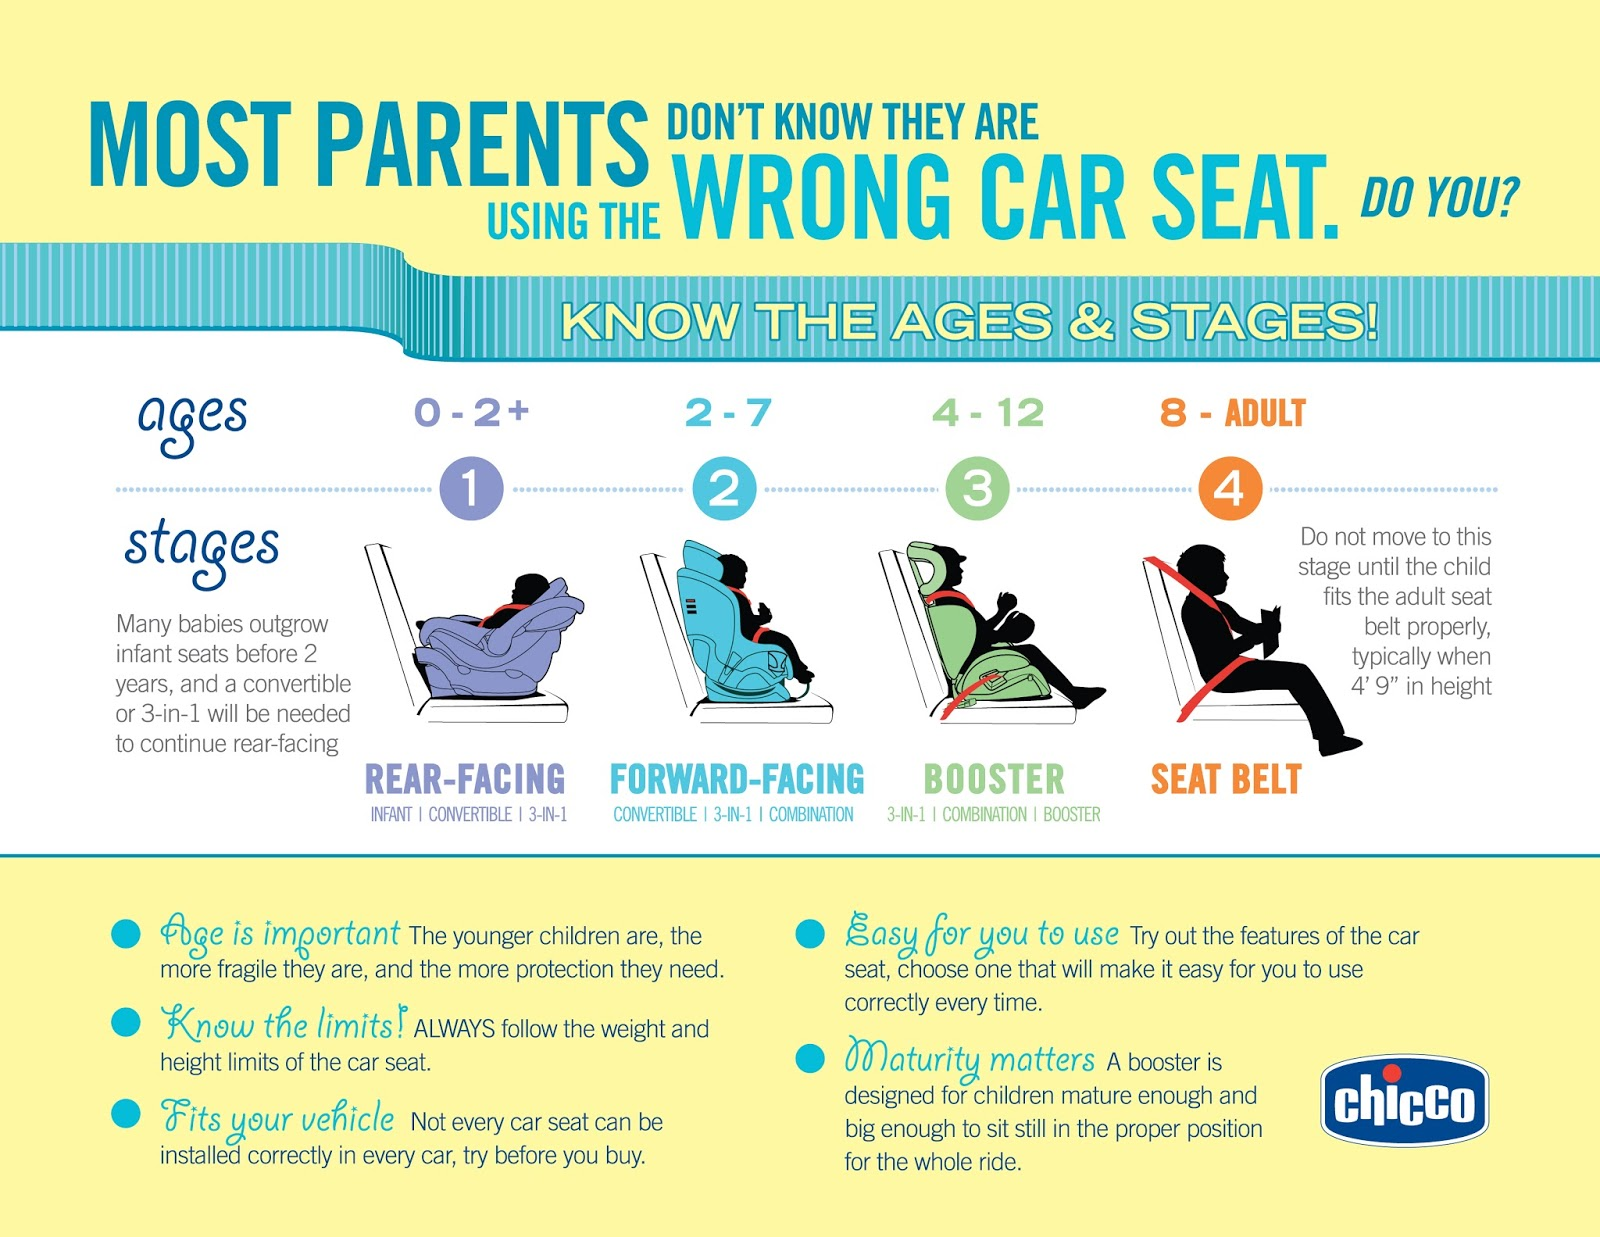 Car Seat Safety Tips From Chicco (Child Passenger Safety